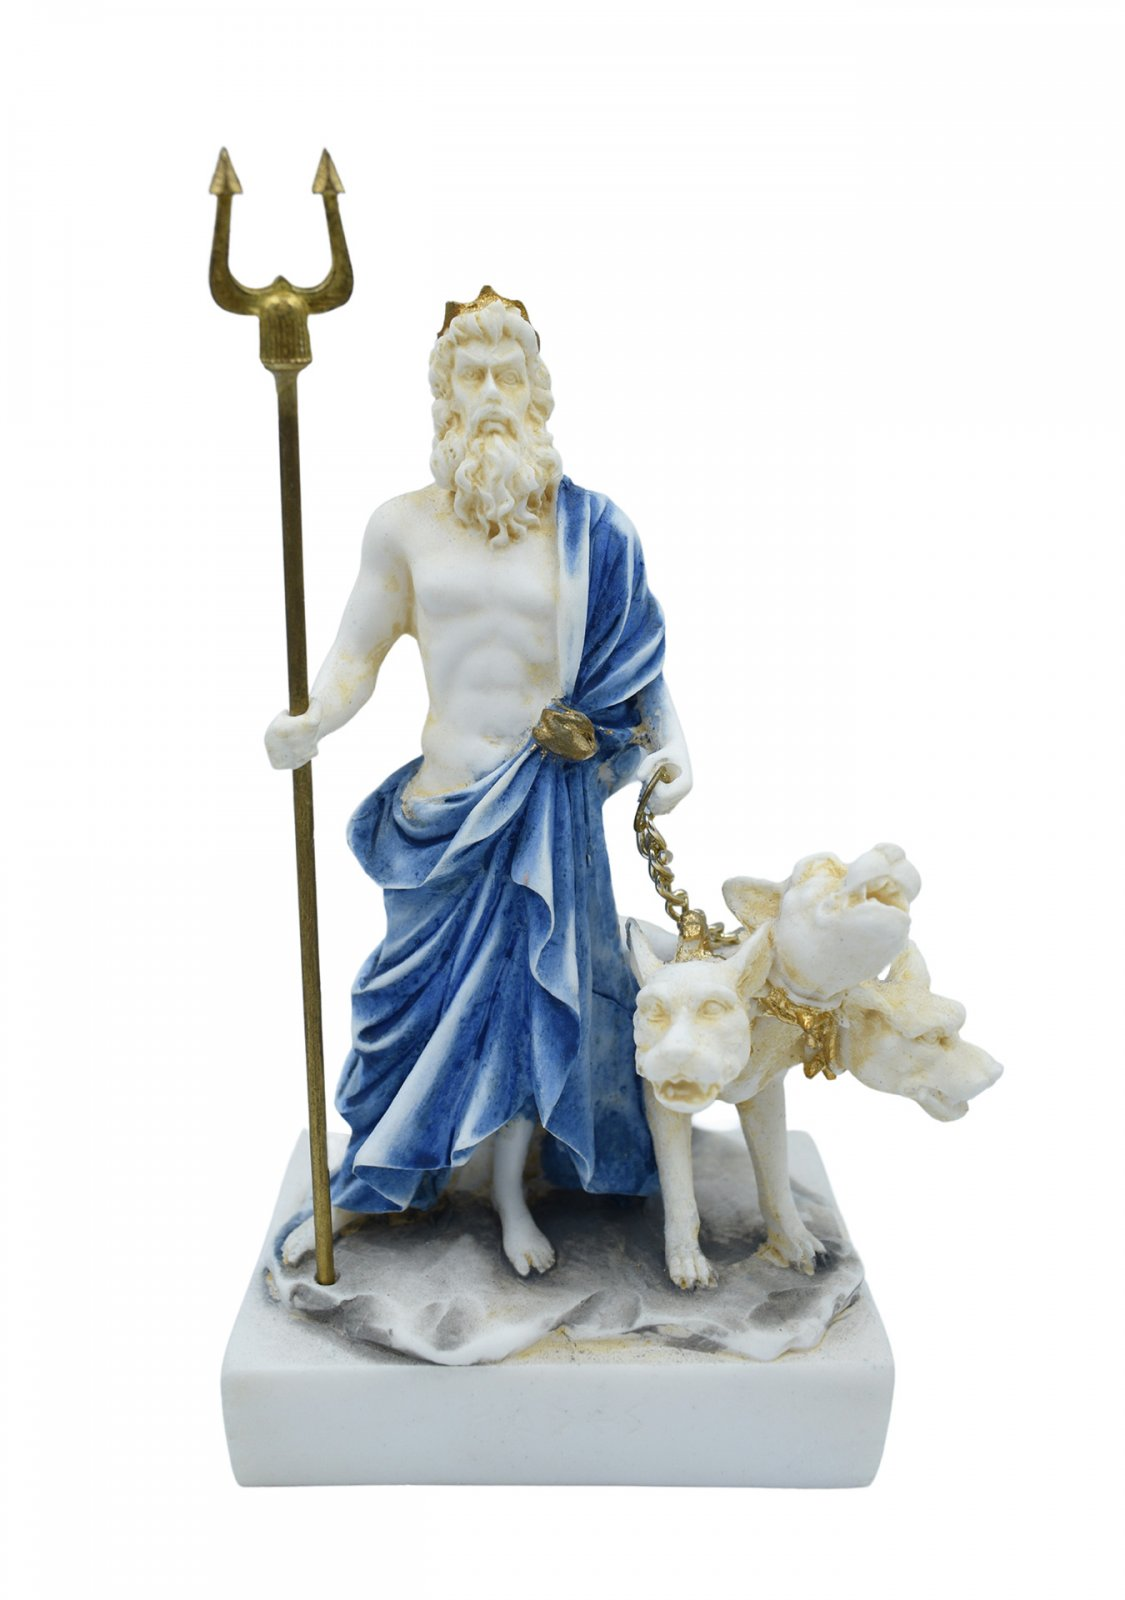 Hades, Pluto, God of the dead and the king of the underworld, small alabaster statue with color